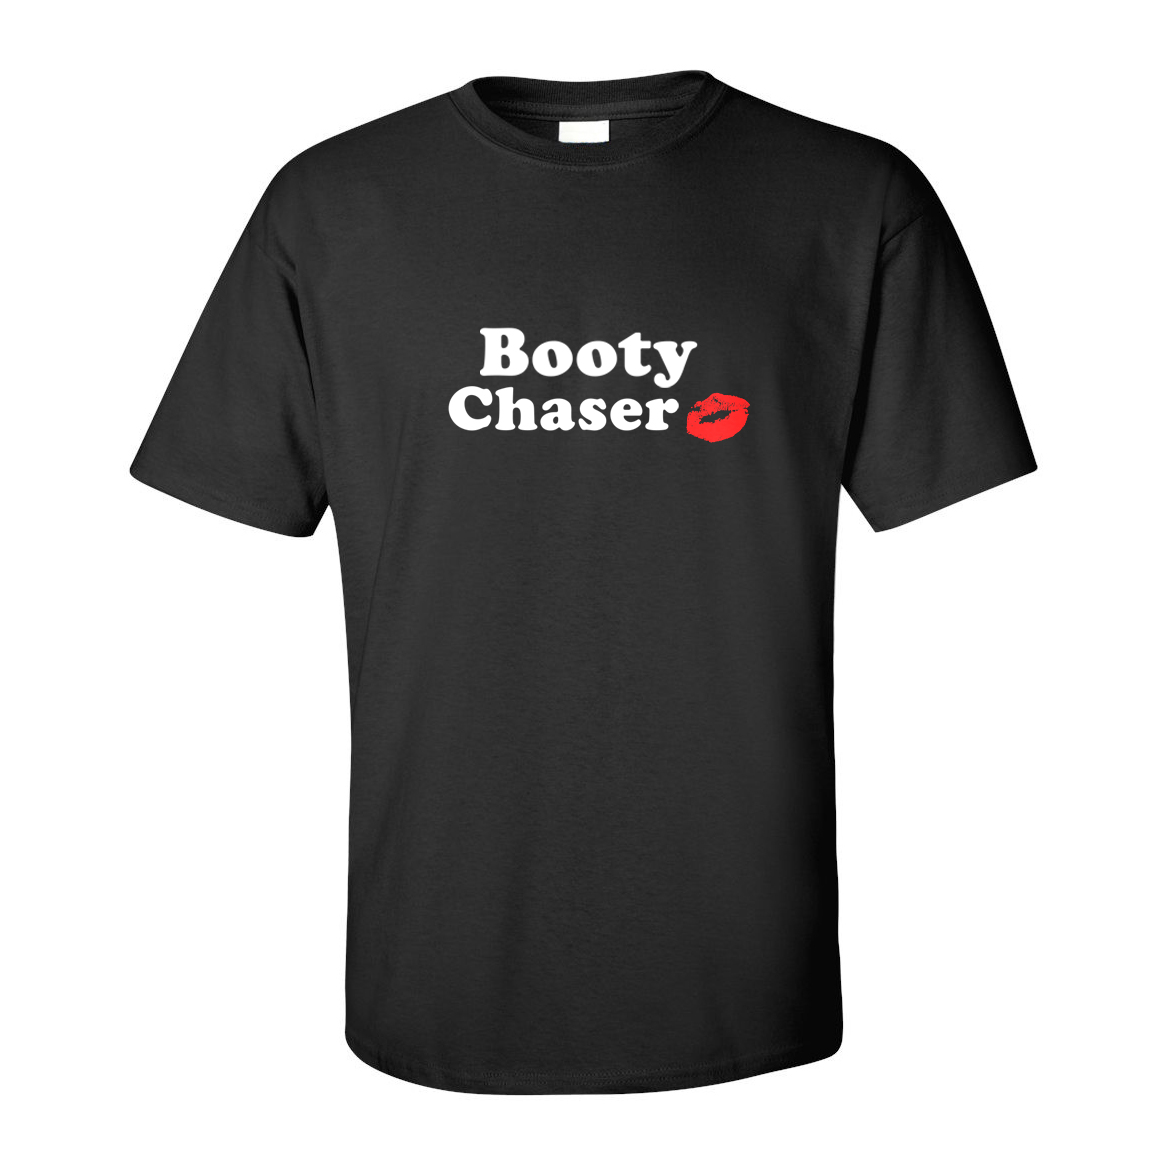 Booty Chaser T-shirt